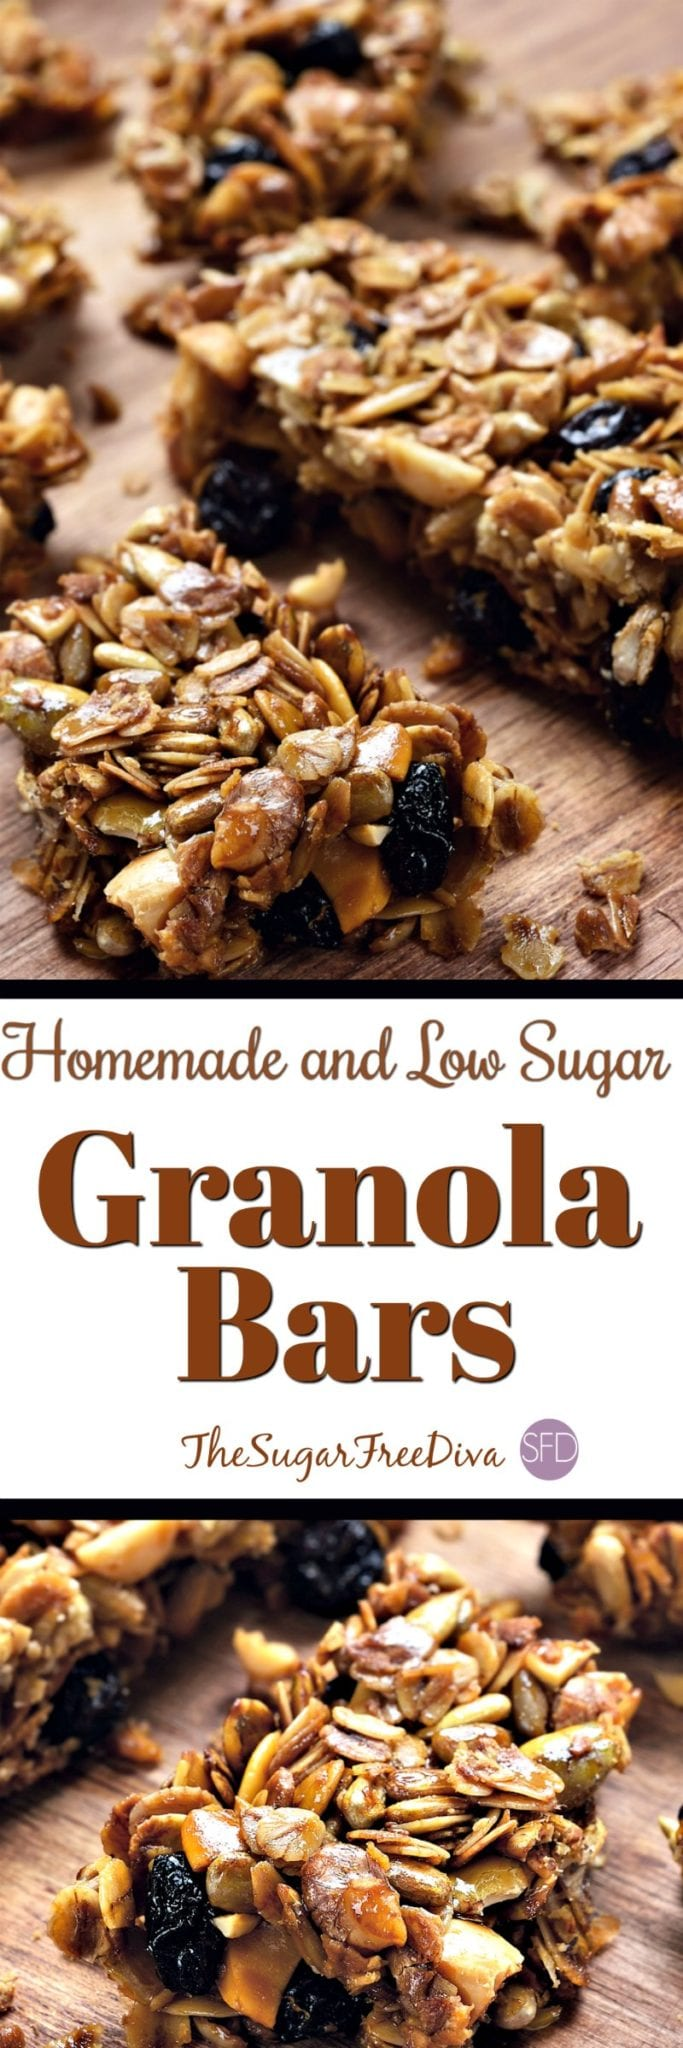 Low Sugar and Homemade Granola Bars